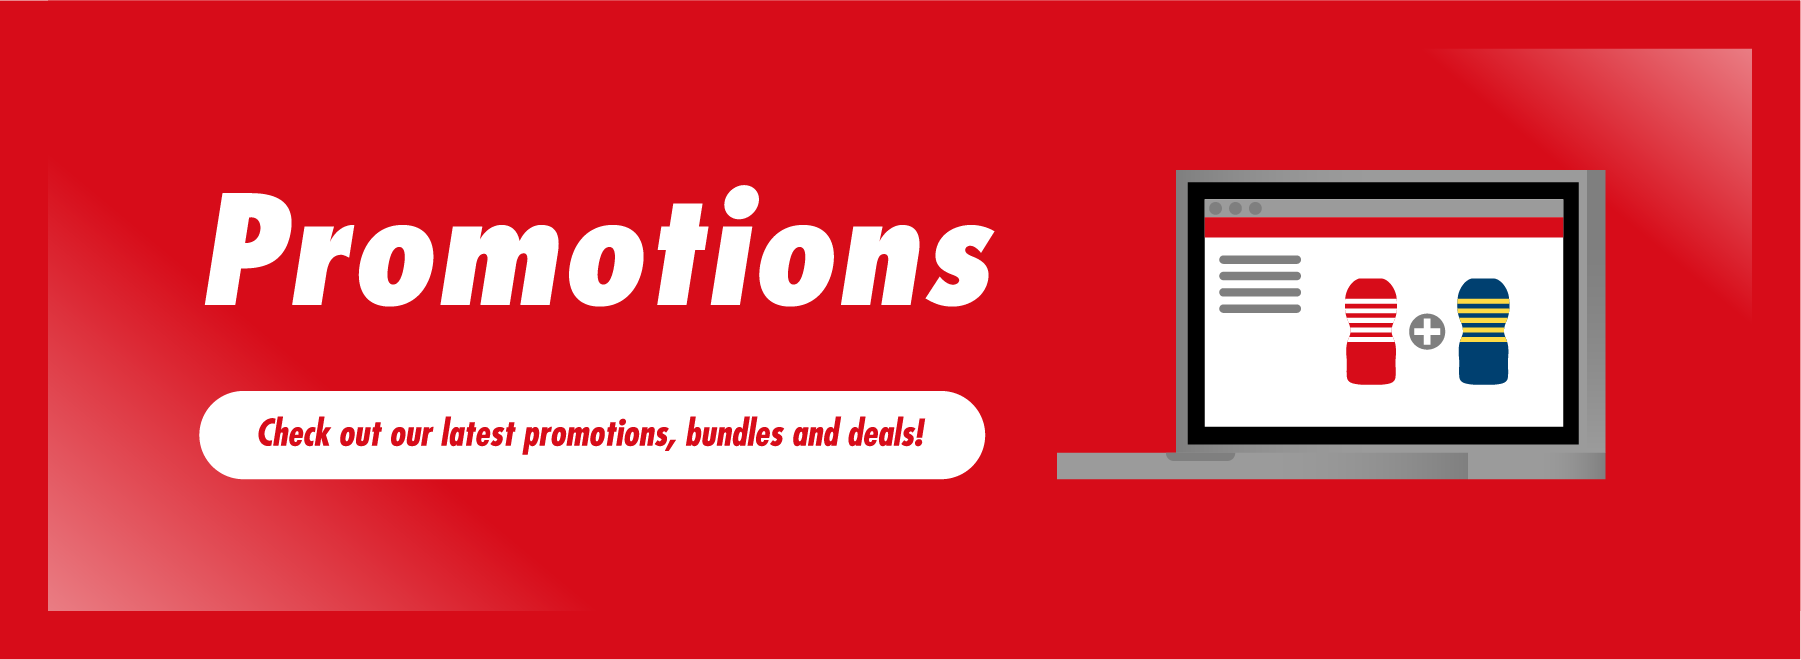 Promotions Check out our latest promotions, bundles and deals!